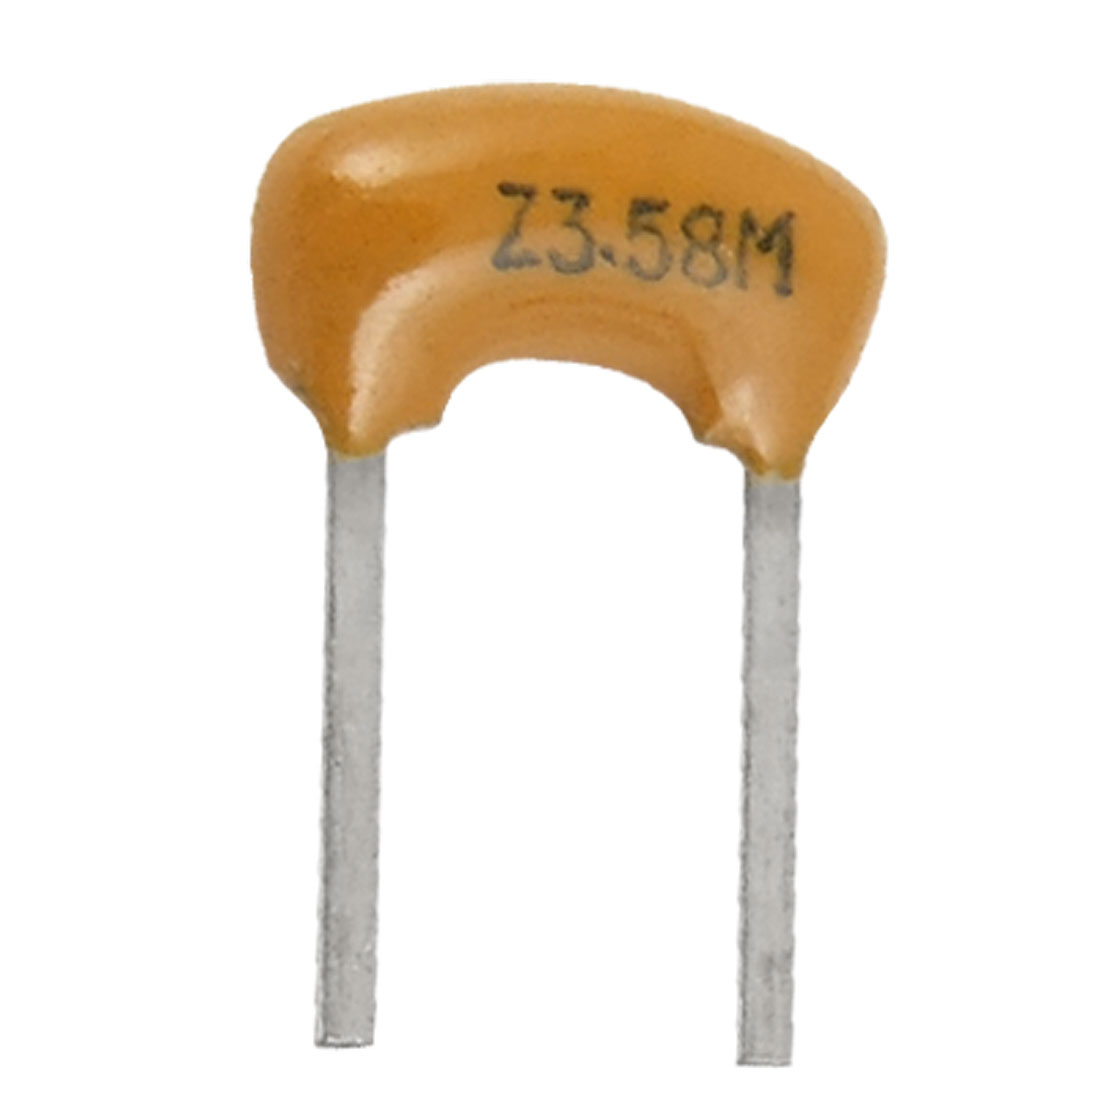 100 Pcs 3.58 MHz 5mm Pitch 2 Terminals Ceramic Filters